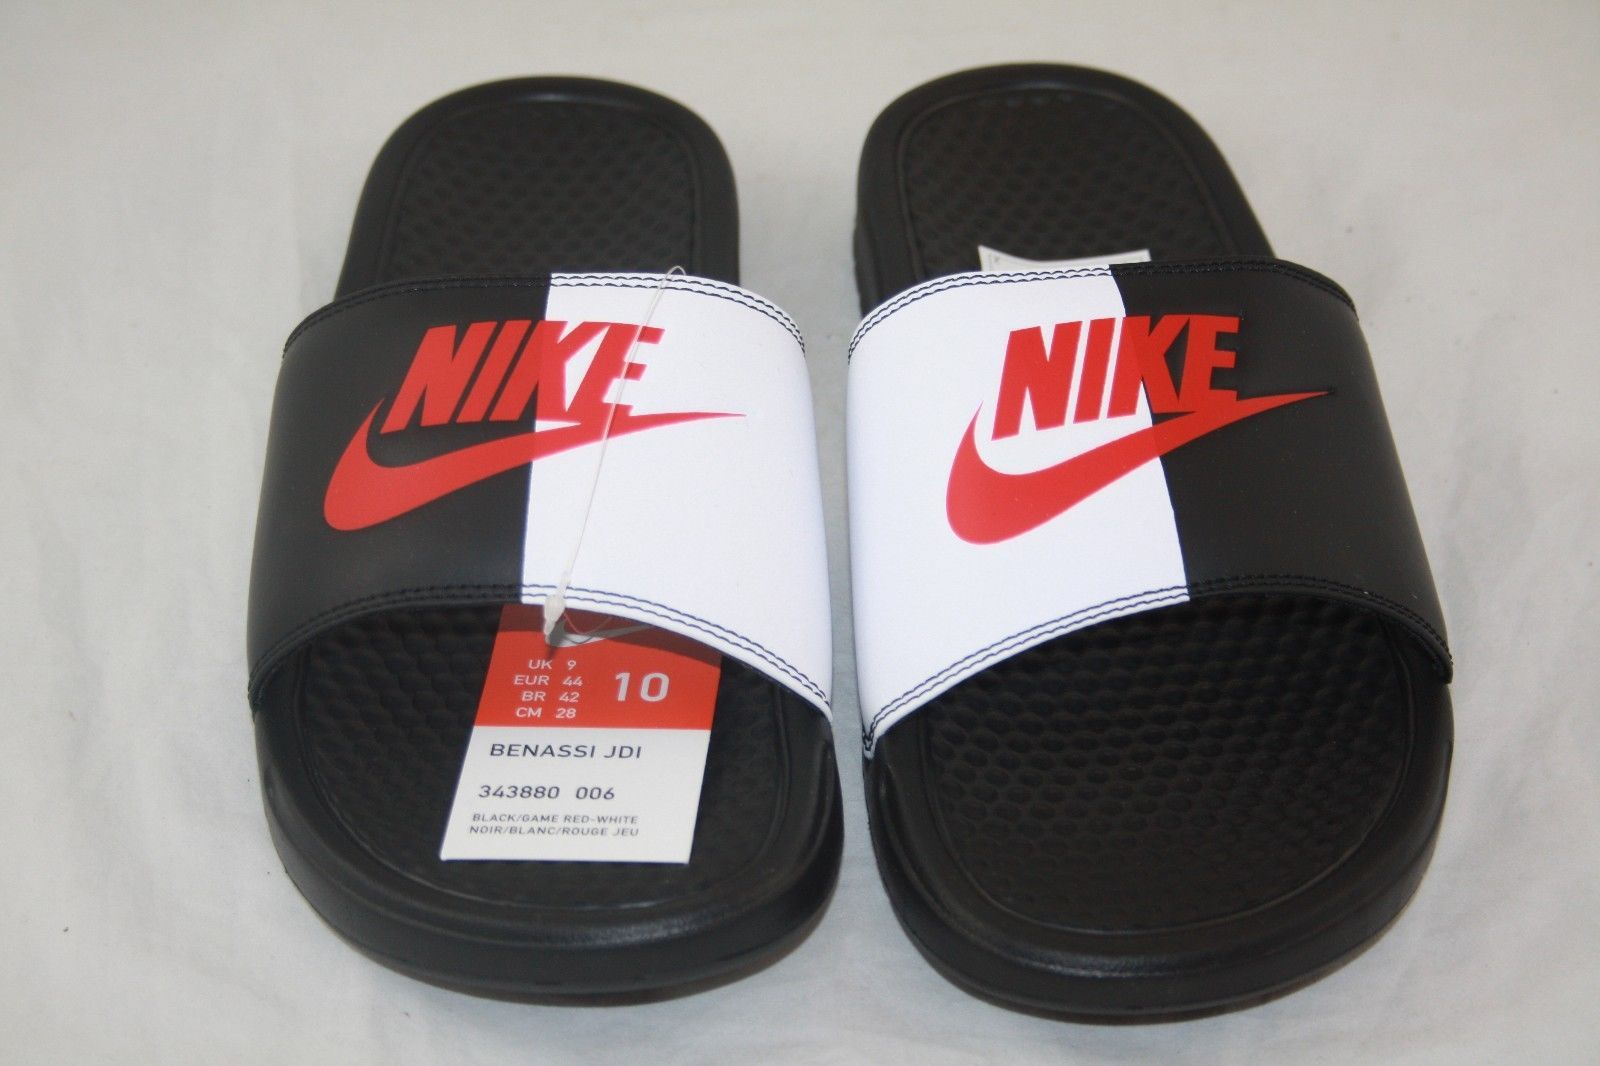 9cc7575edf0c37 New Nike BENASSI JDI Men s Black Game Red-White 343880-006 Slide Sandals